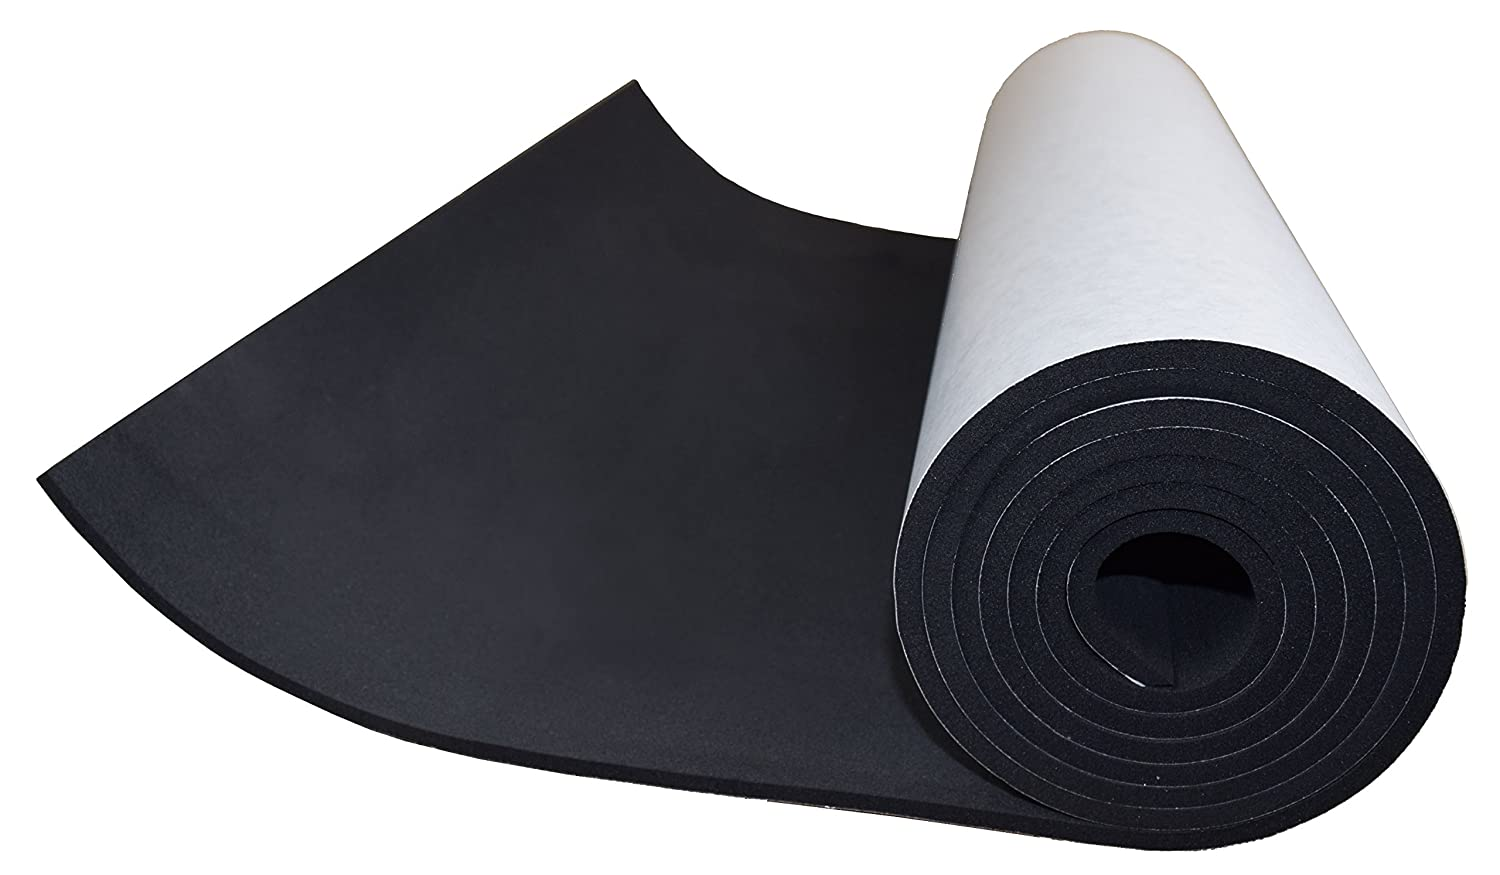 XCEL Sponge Neoprene Sheet with Adhesive 72 in x 17 in x 1 4 in